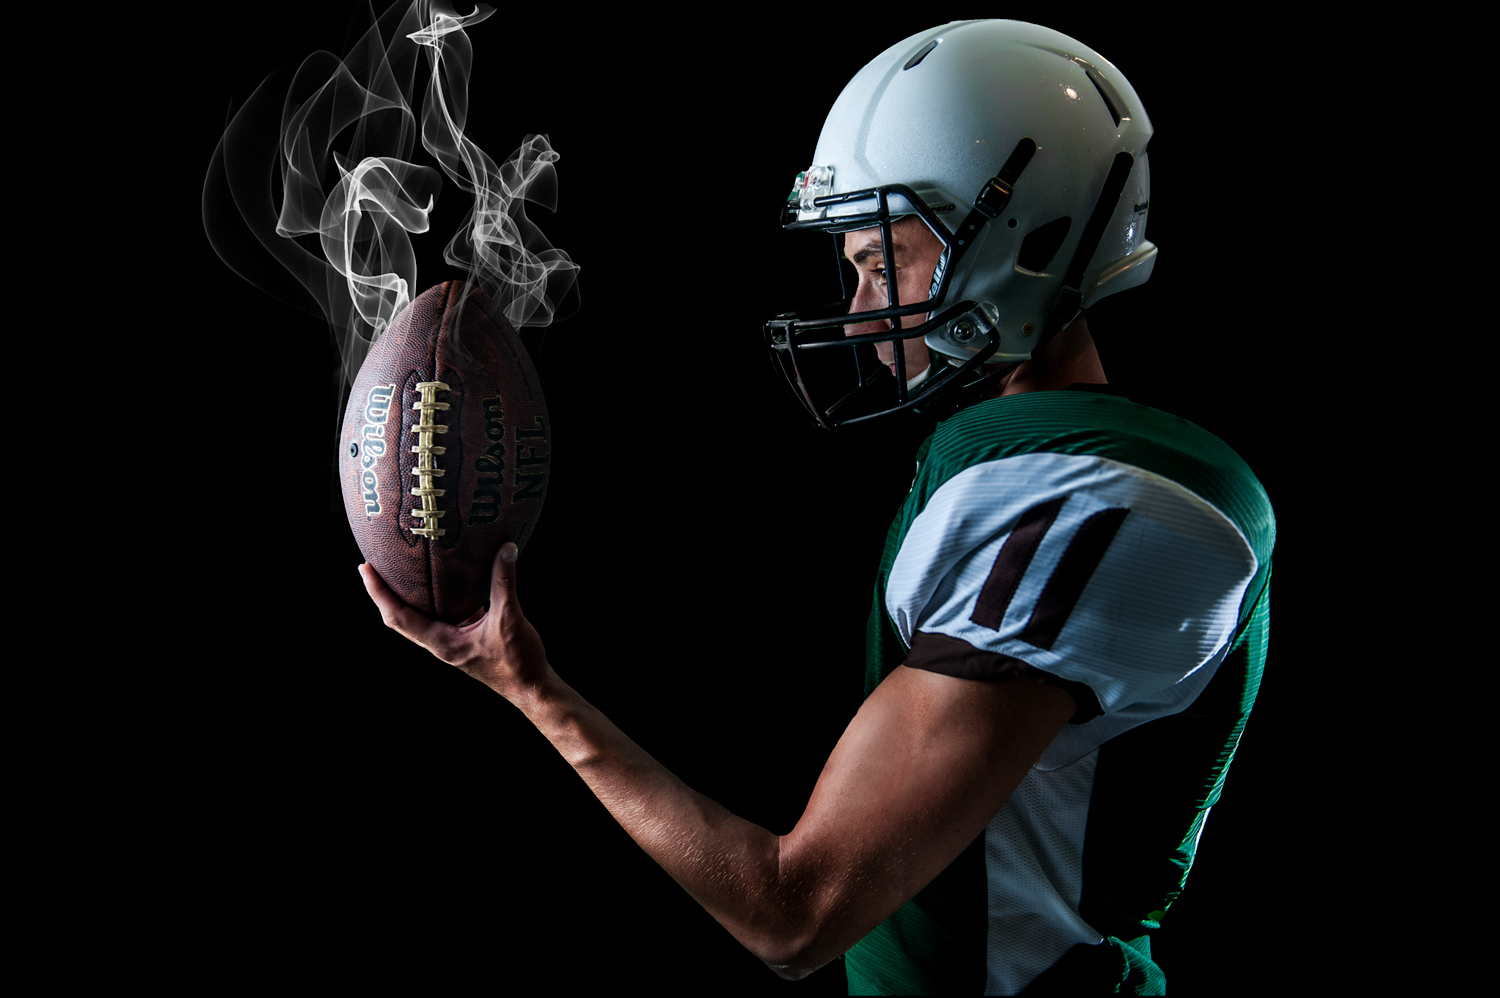 Flagstaff Senior sports photos